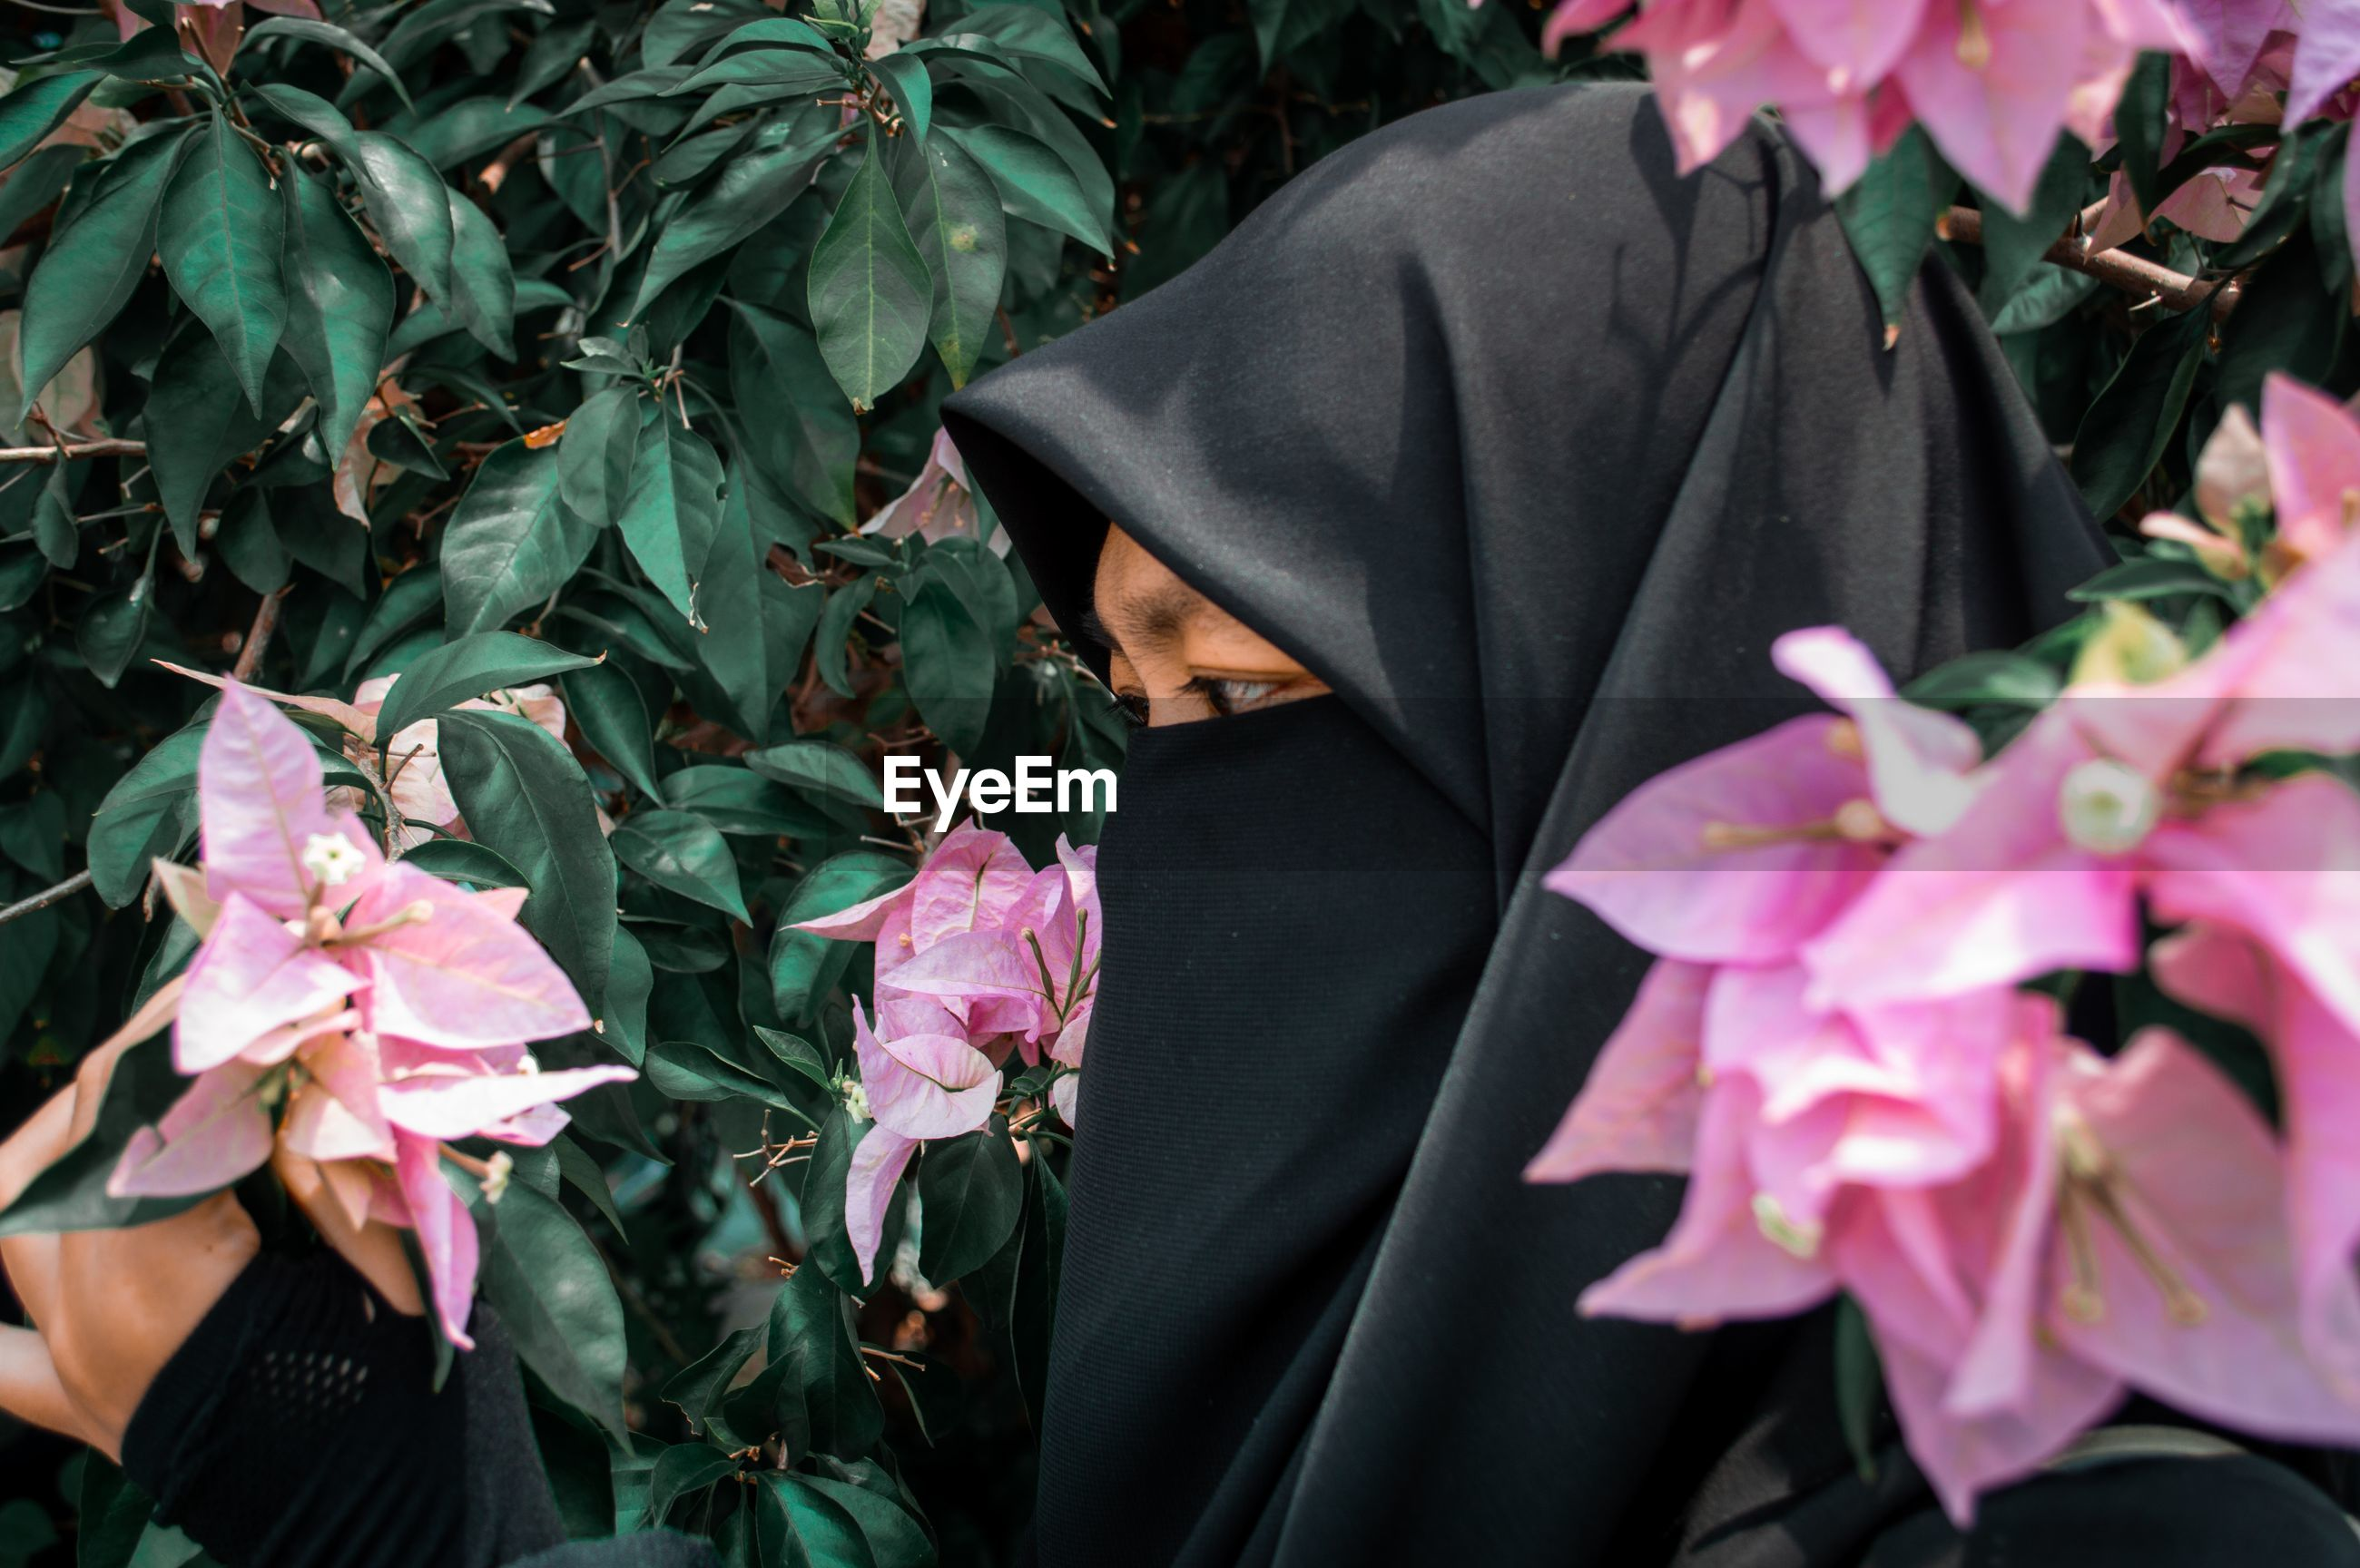 Close-up of woman in hijab amidst flowering plant